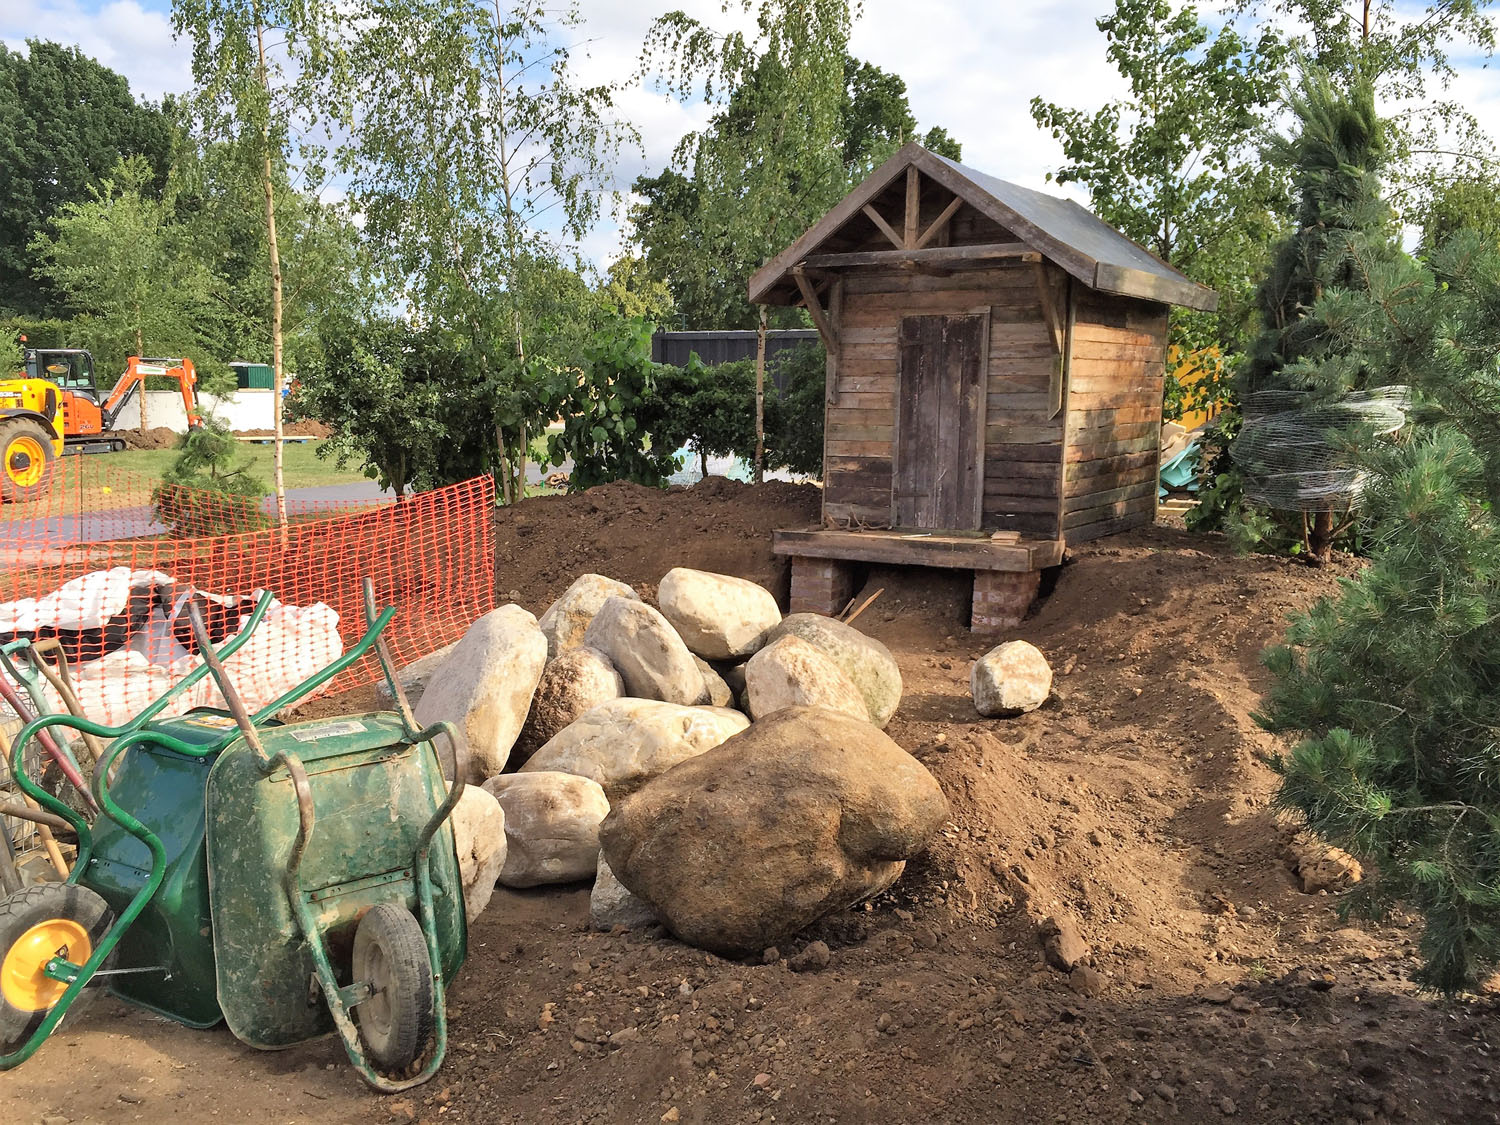 How To Use Boulders: 'The Viking Cruises Nordic Lifestyle Garden' At RHS Hampton Court Flower Show